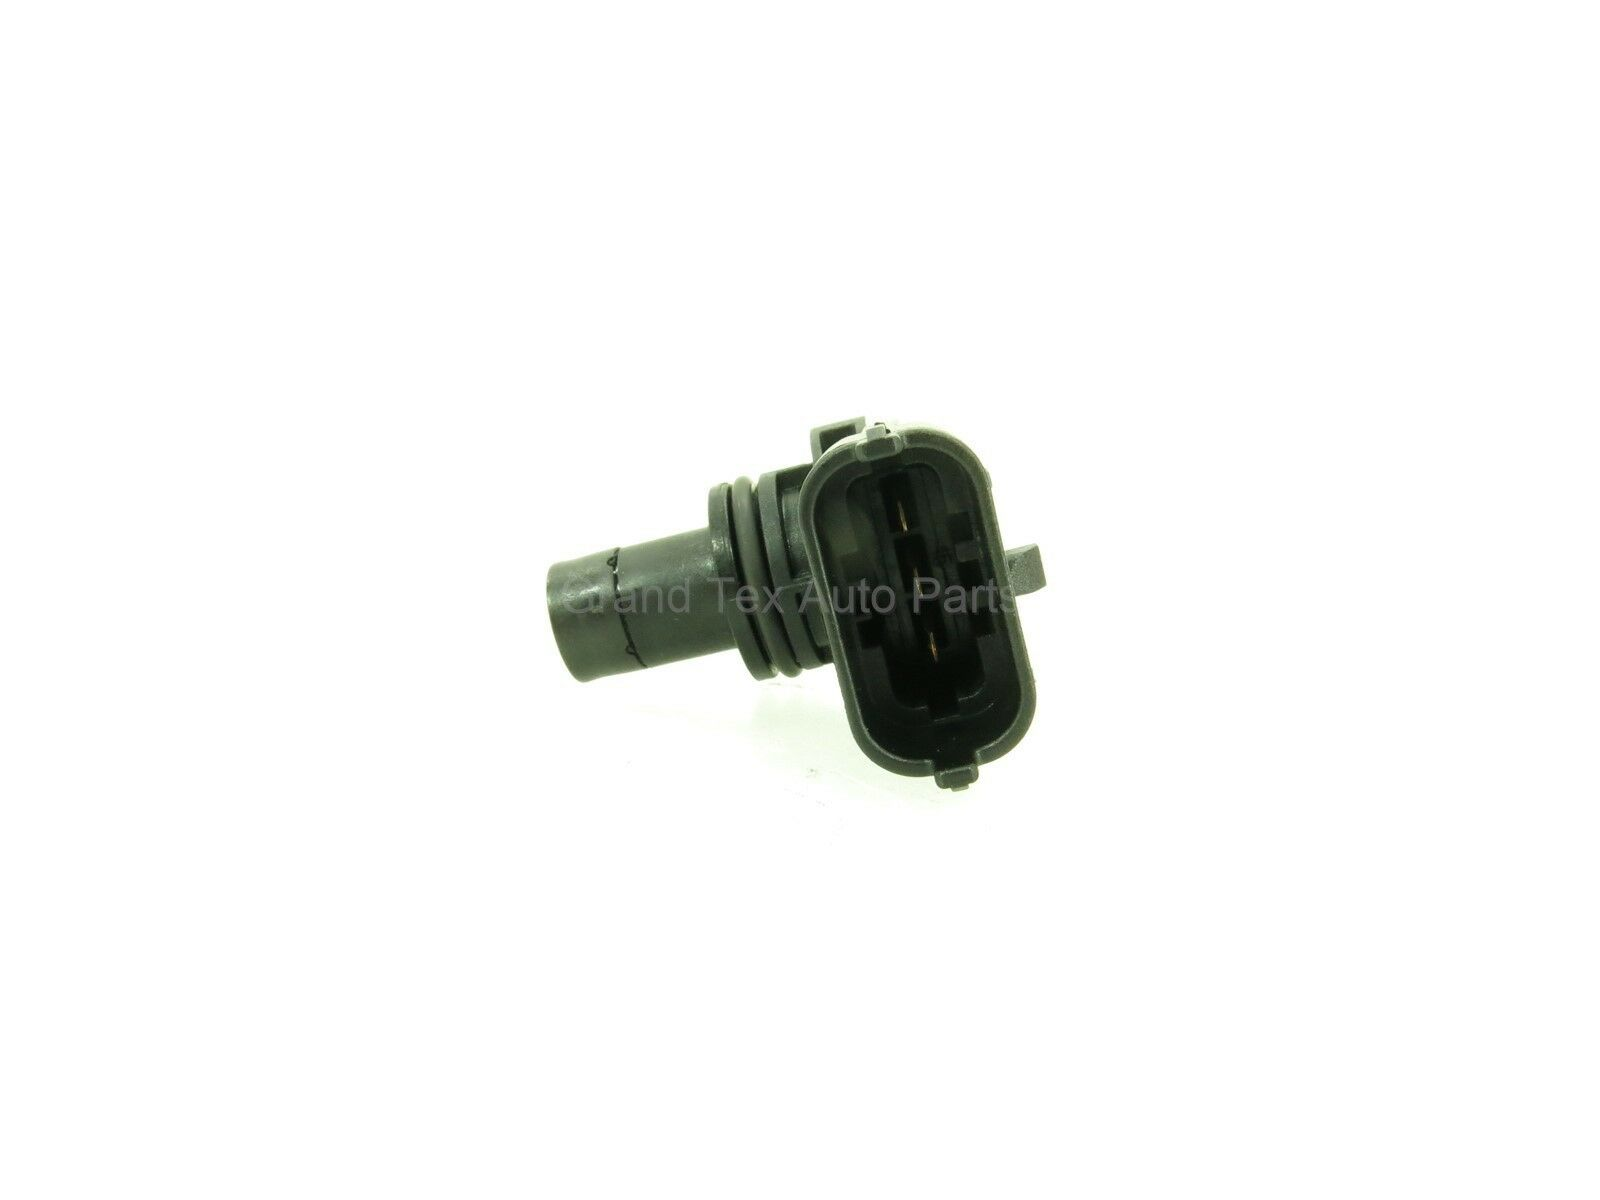 NEW ACDelco Camshaft Position Sensor 12608424 Chevy Cadillac Saturn 3.6 2007-09